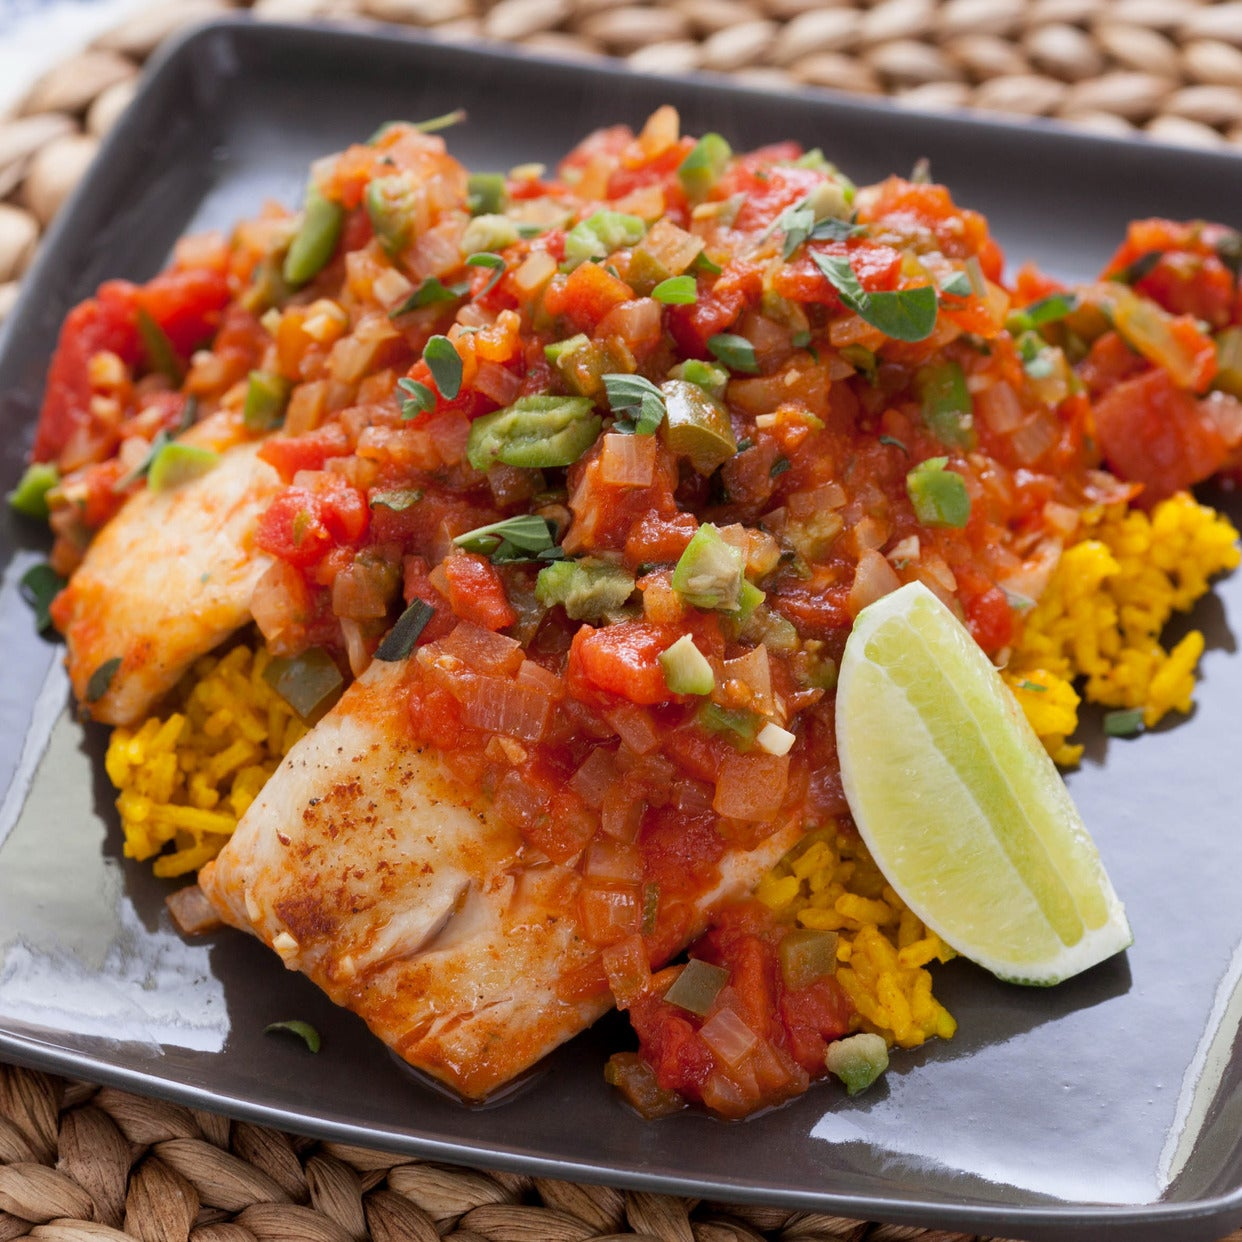 Tilapia Veracruzana with Yellow Rice